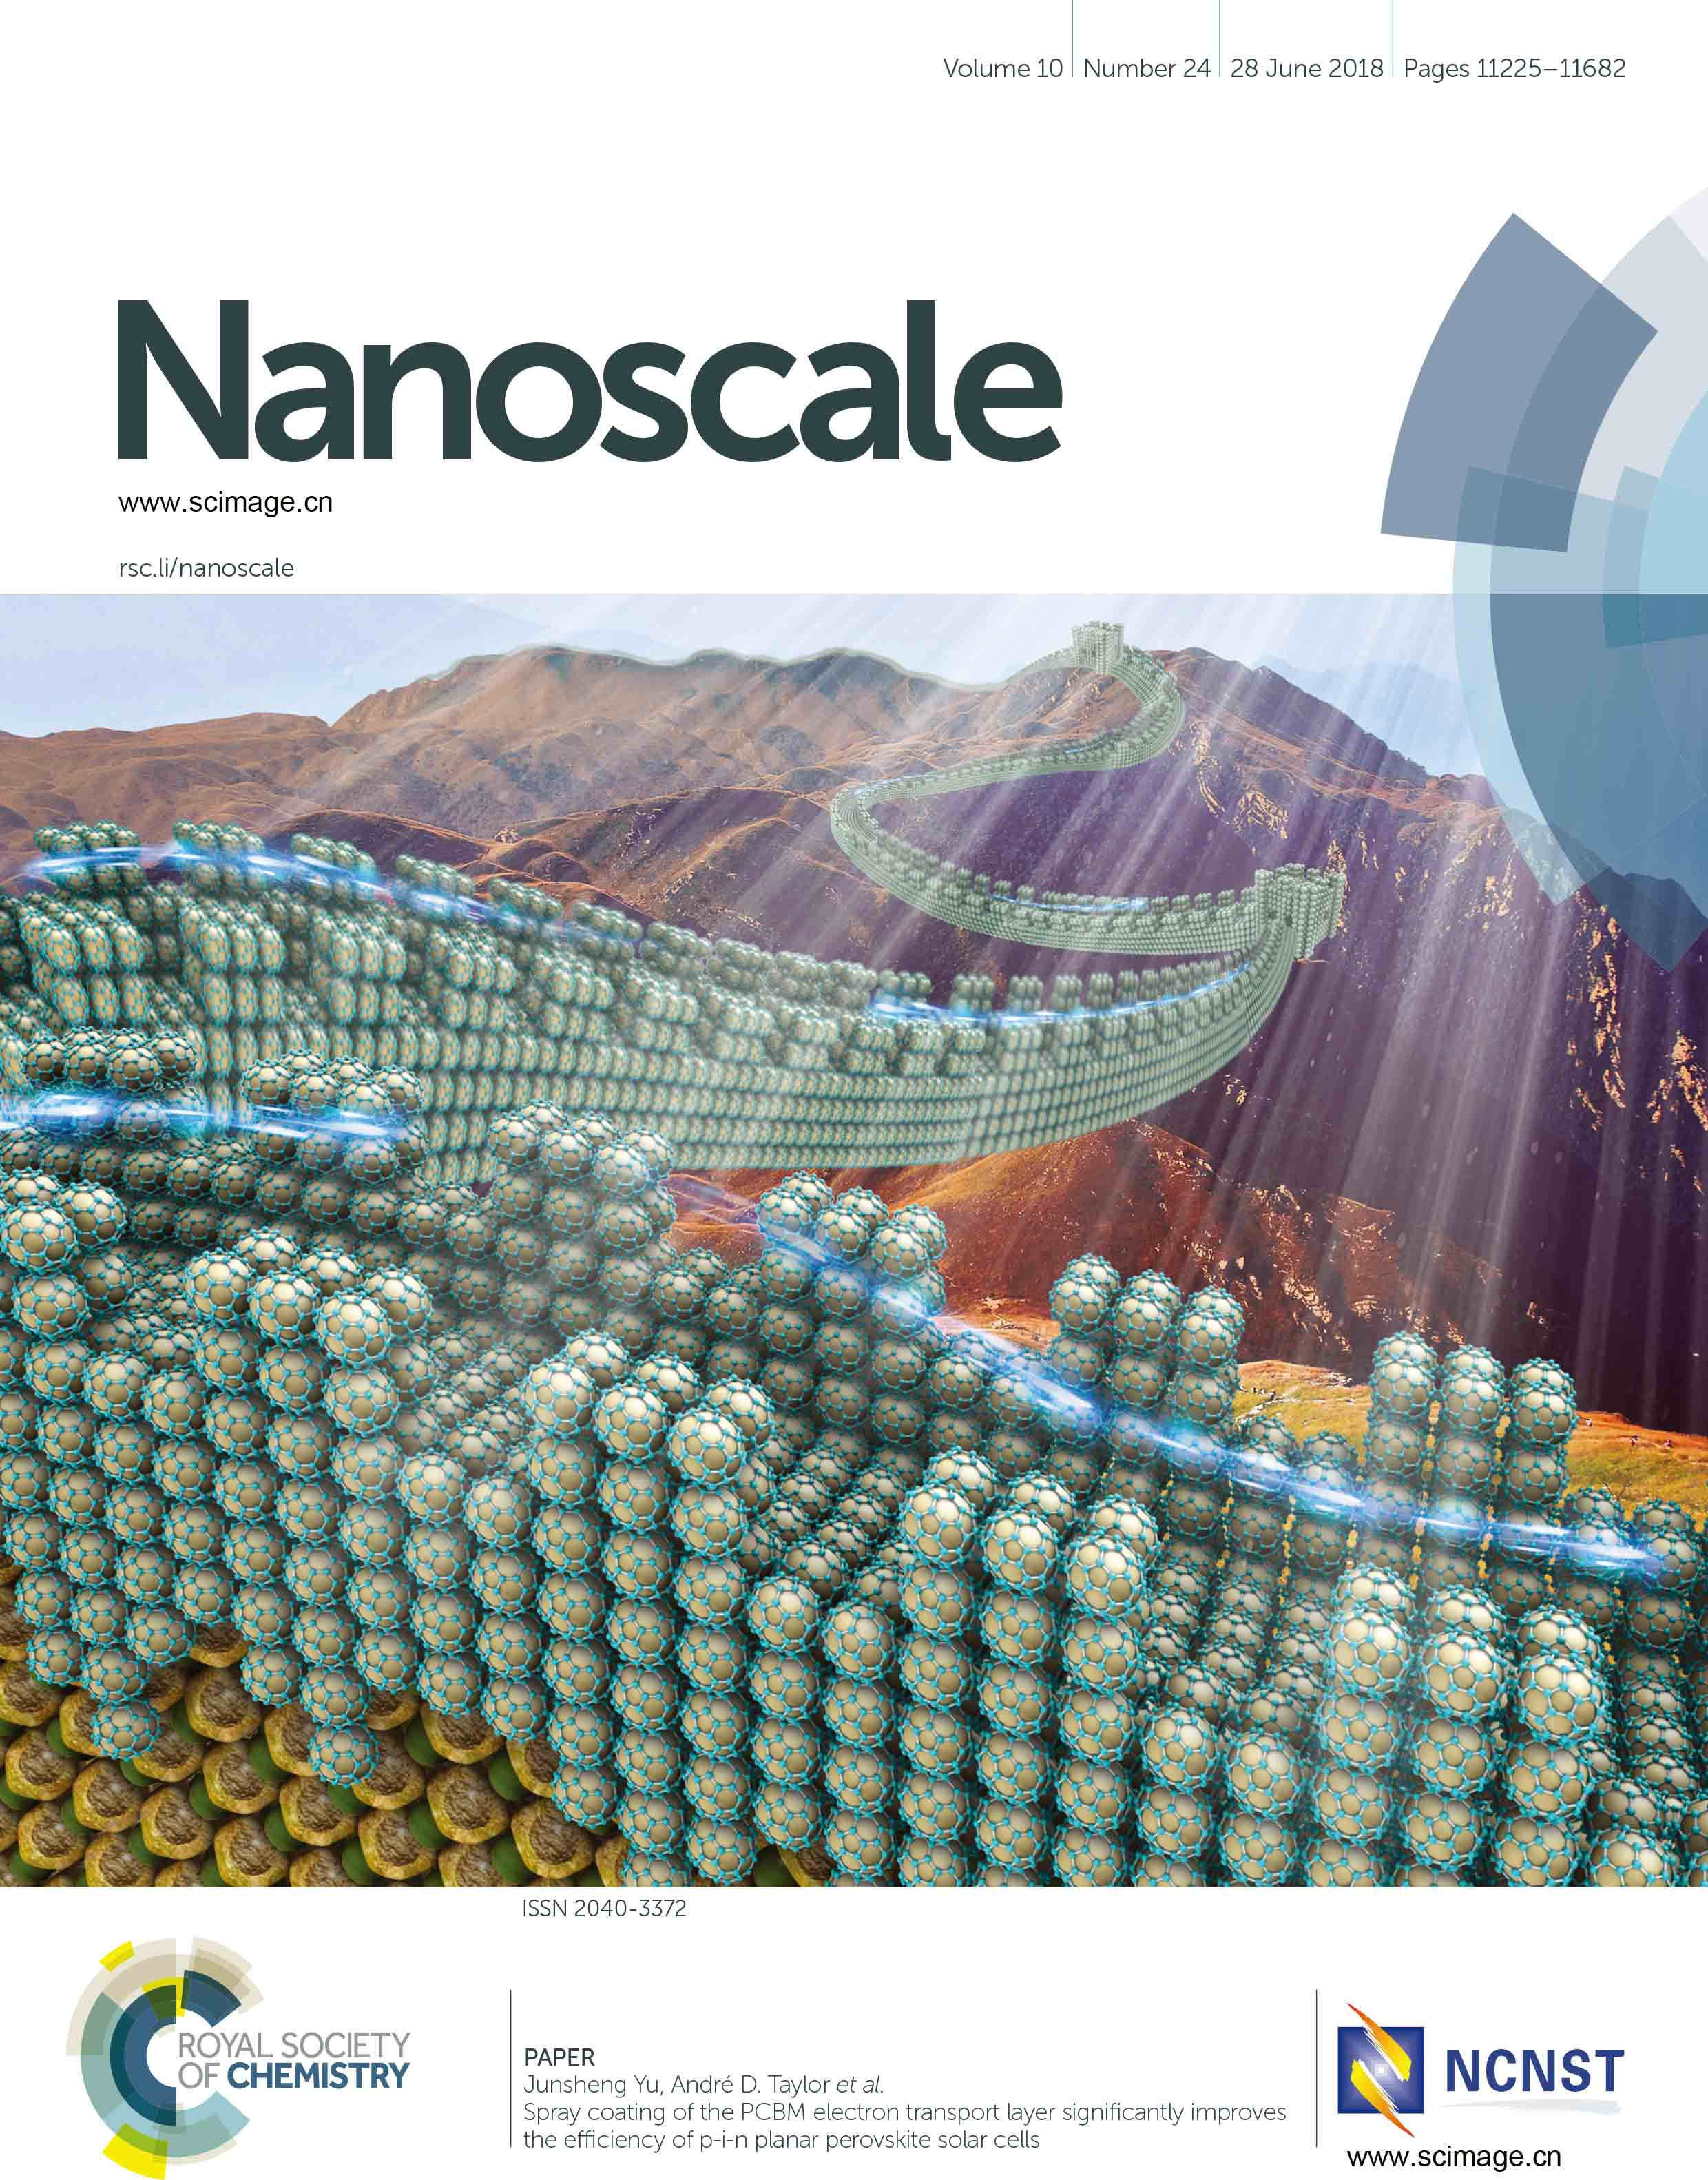 Spray coating of the PCBM electron transport layer significantly improves the efficiency of p-i-n planar perovskite solar cells